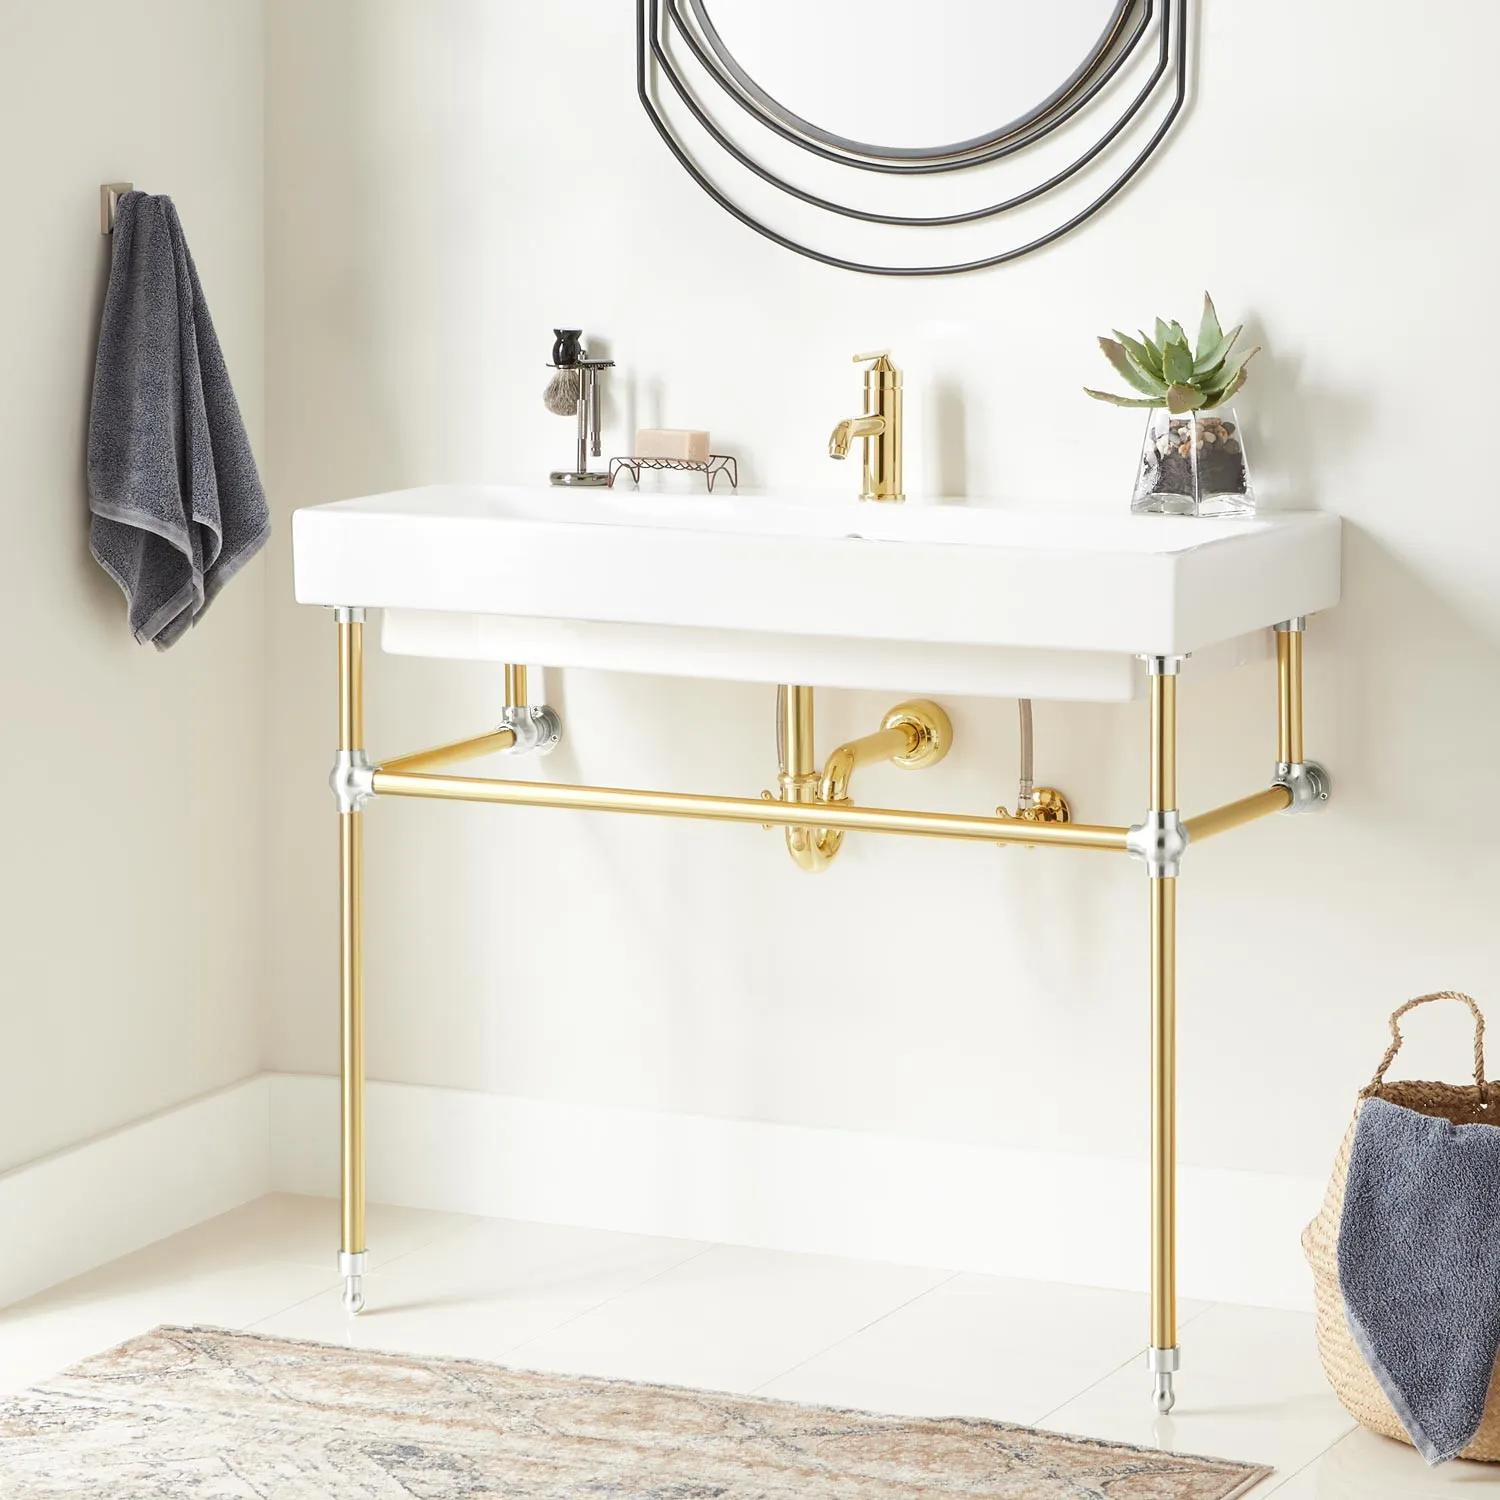 39 Stoddert Porcelain Console Sink With Brass Stand Polished Brass Chrome Bathroom Sinks Sinks